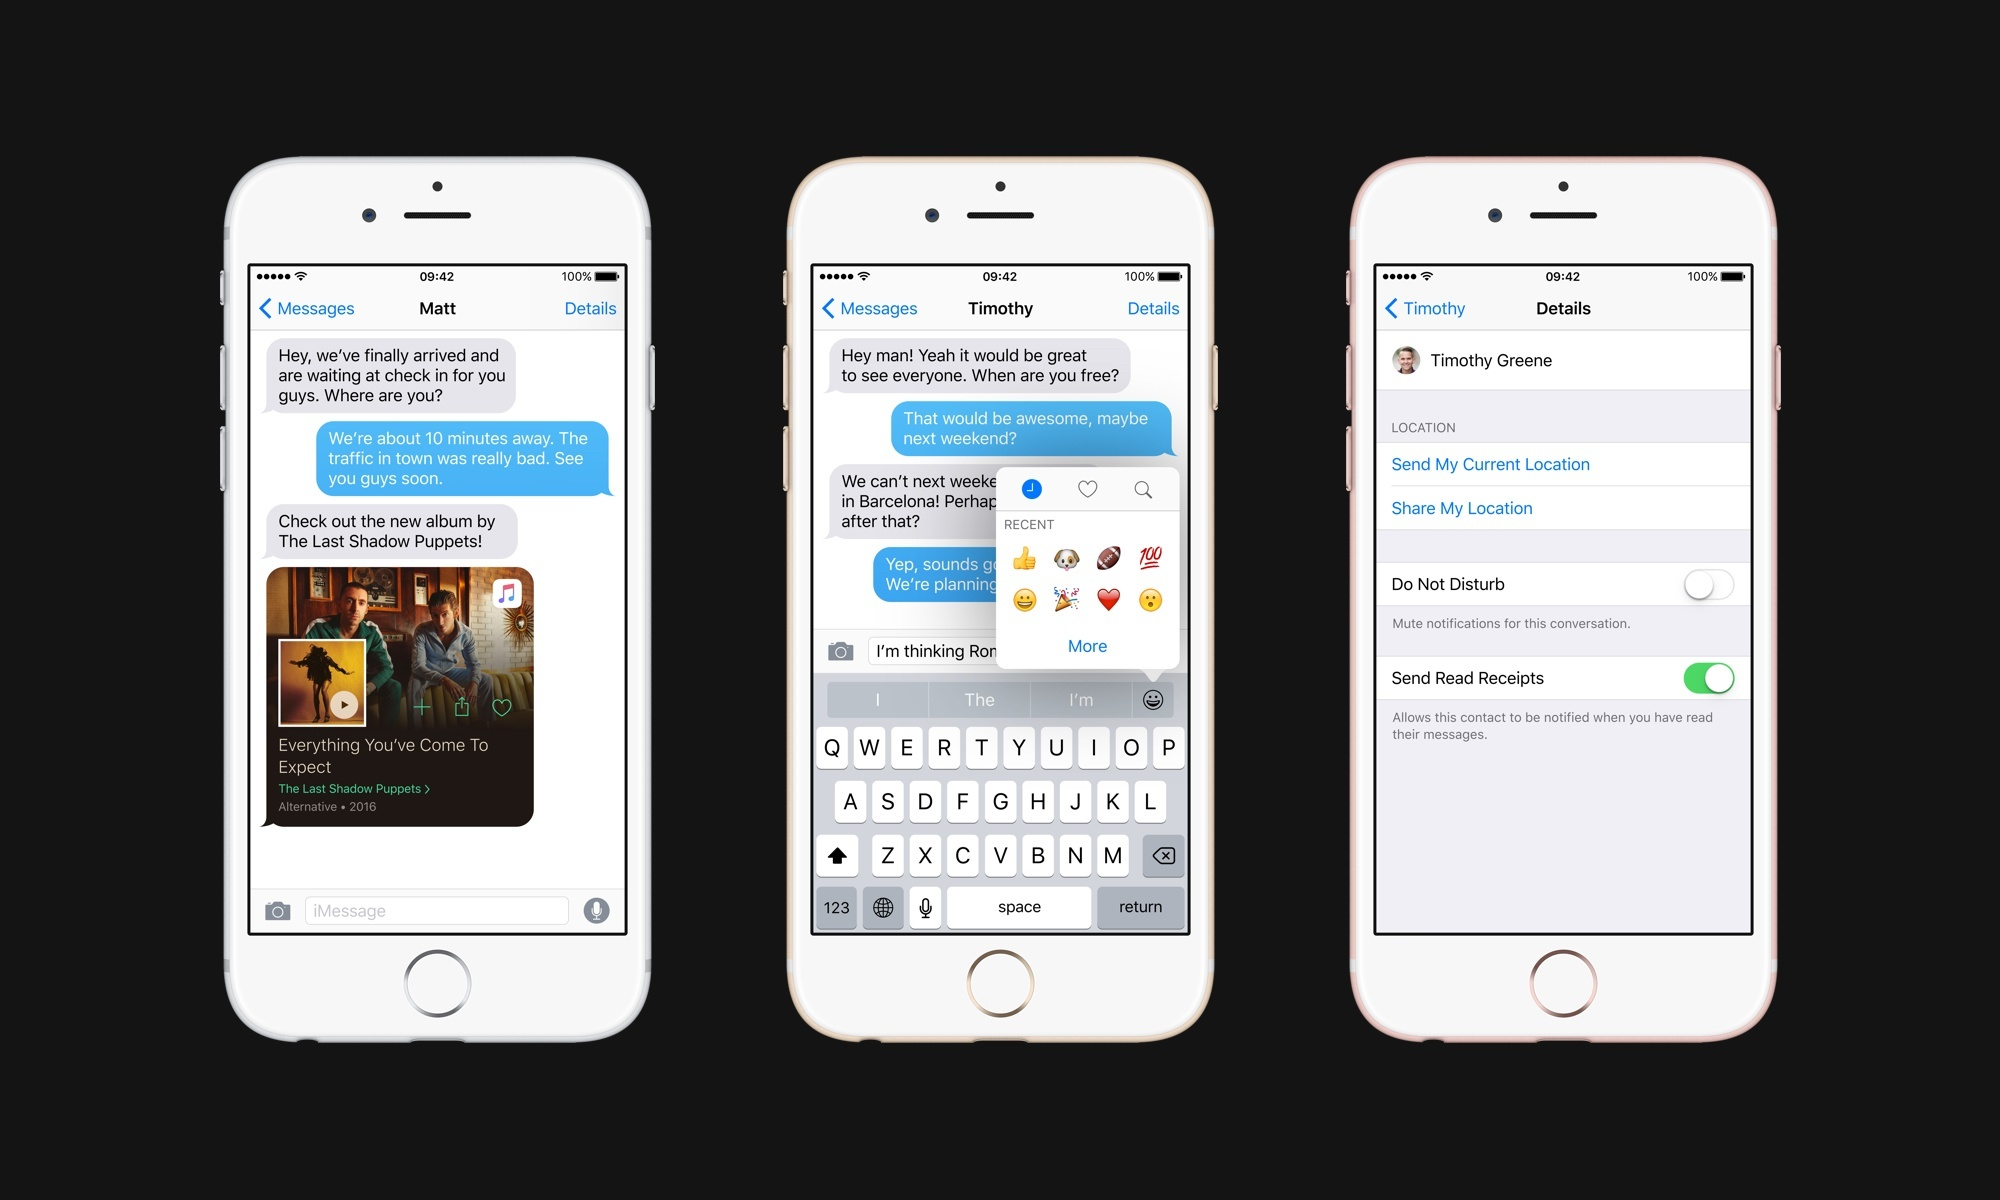 Rich previews, faster emoji input, and granular read receipts in Messages.